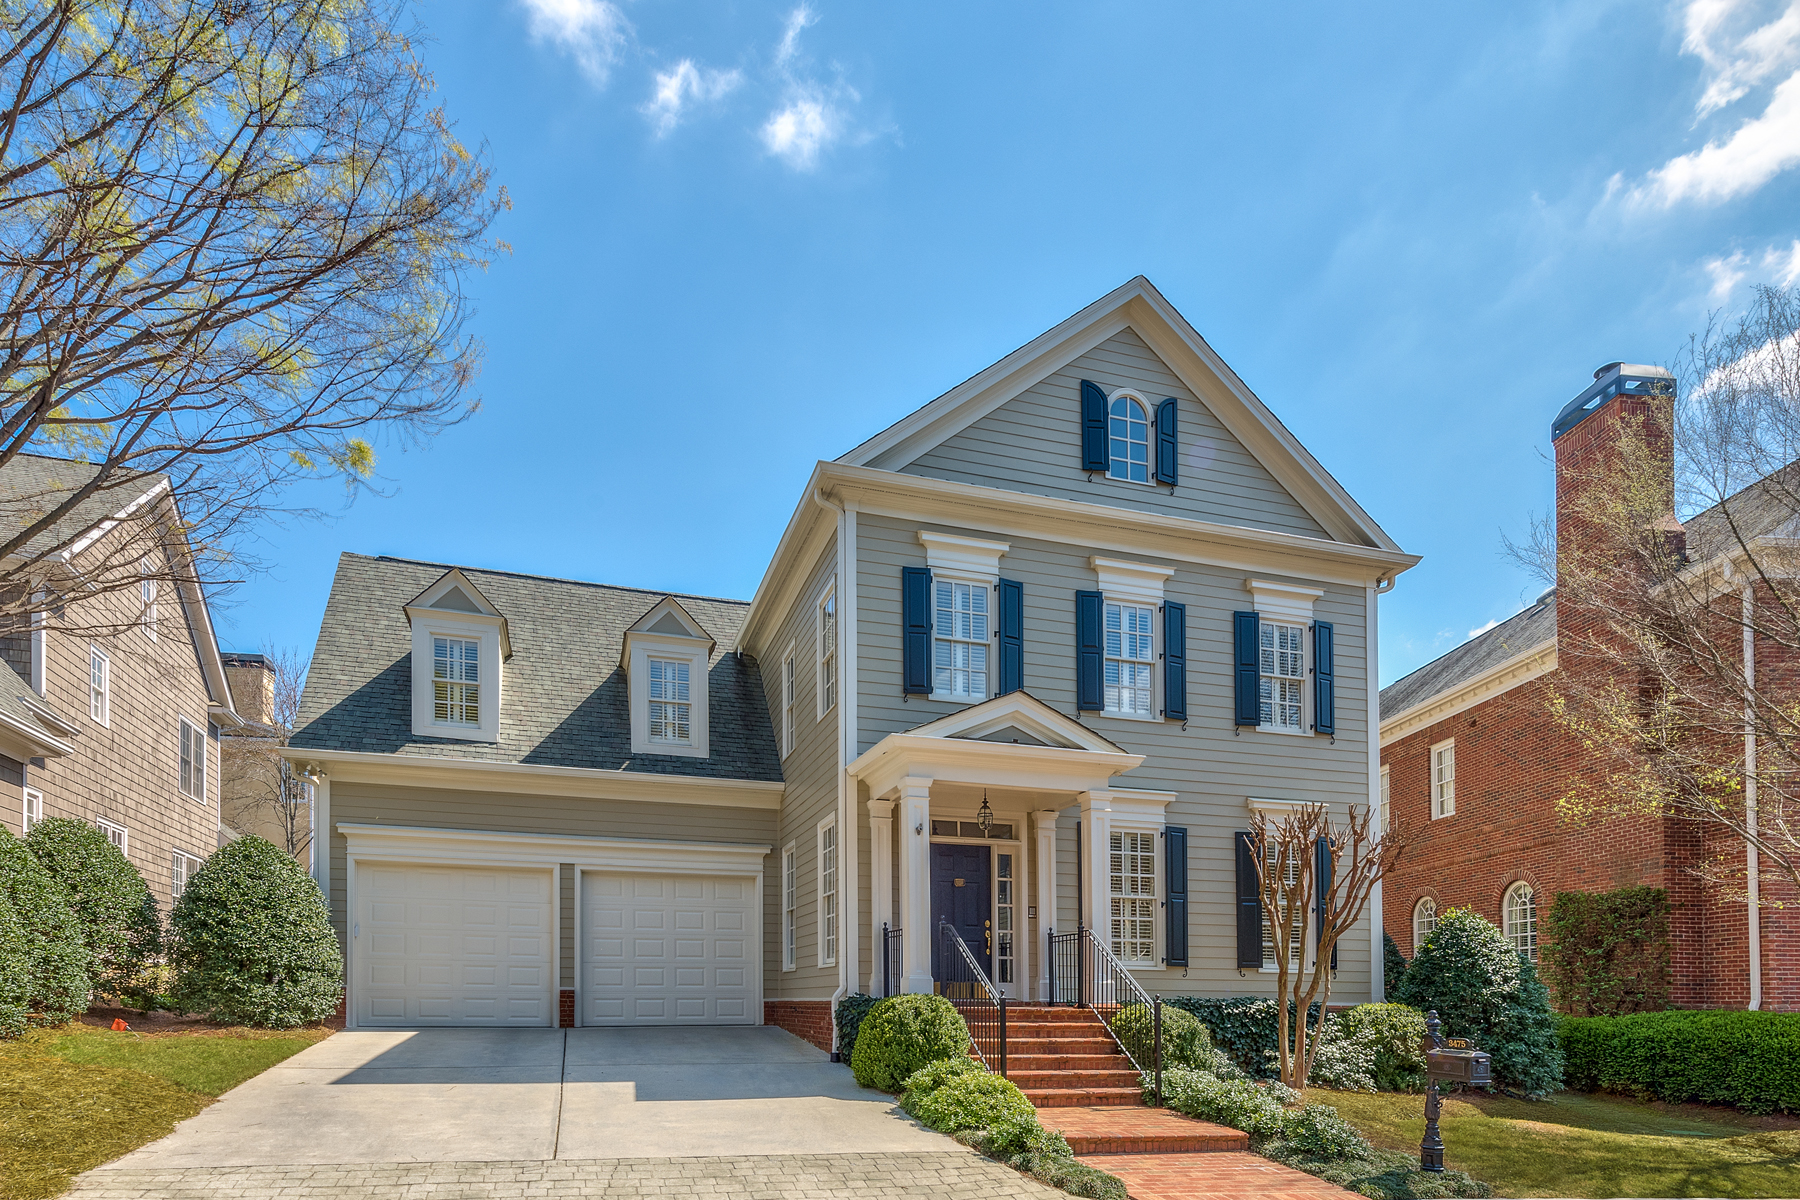 Single Family Home for Active at Beautiful Home Located In SmyrnaVinings 3475 Paces Ferry Circle SE Smyrna, Georgia 30080 United States